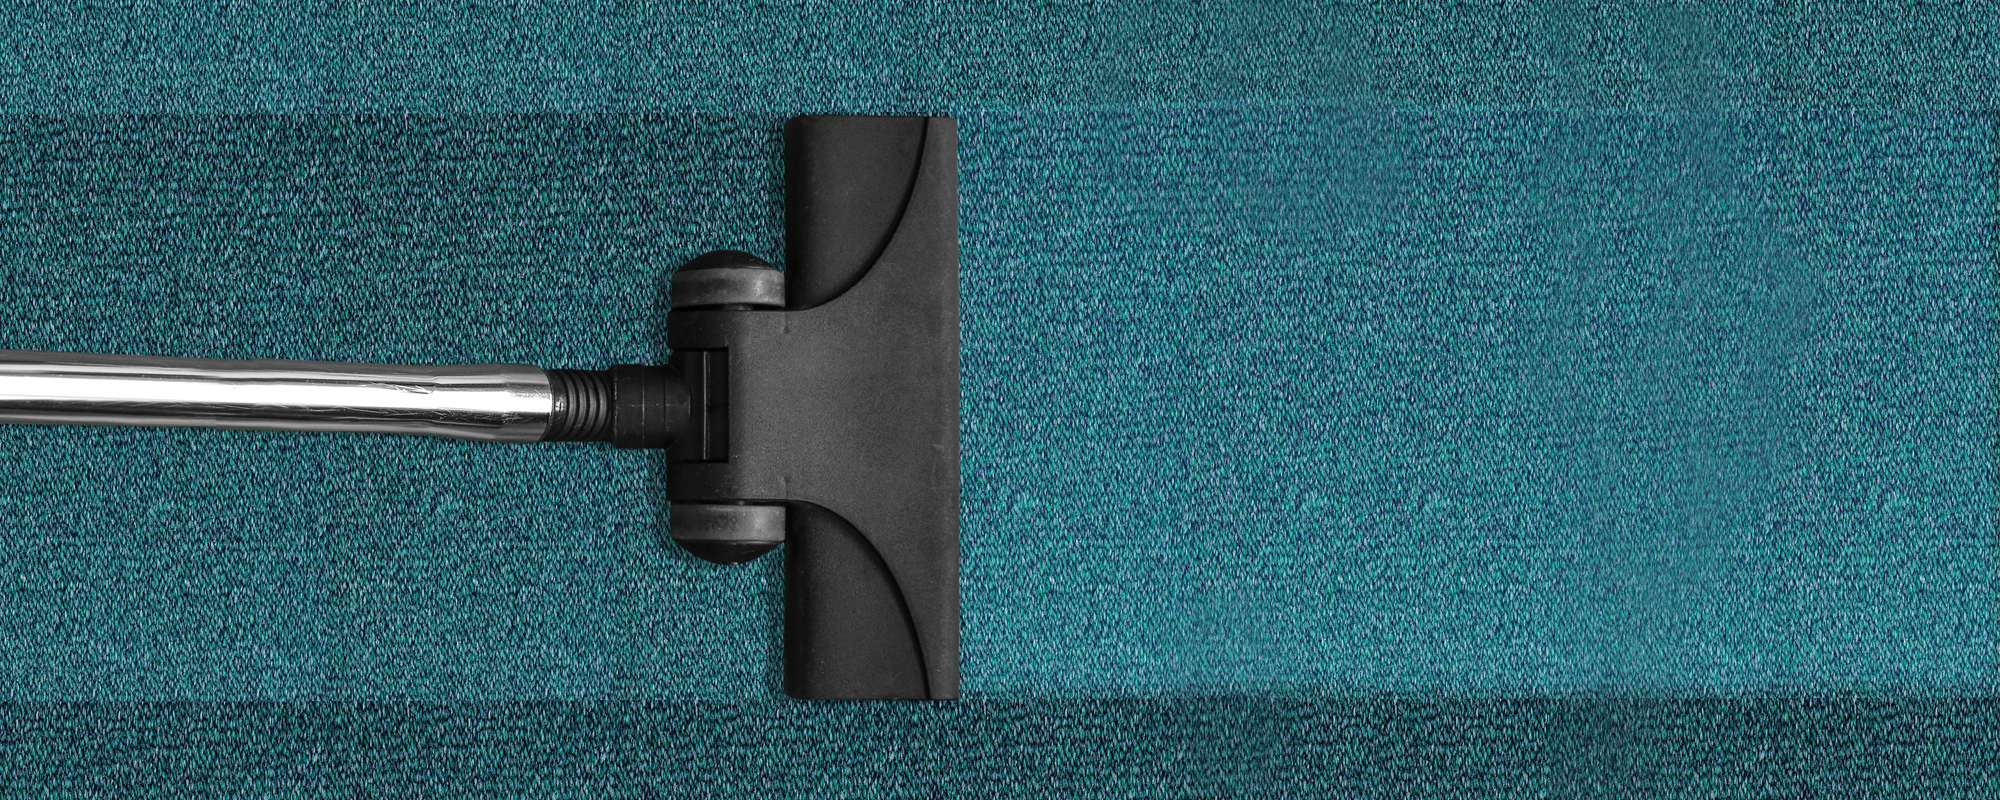 Spring cleaning your carpets